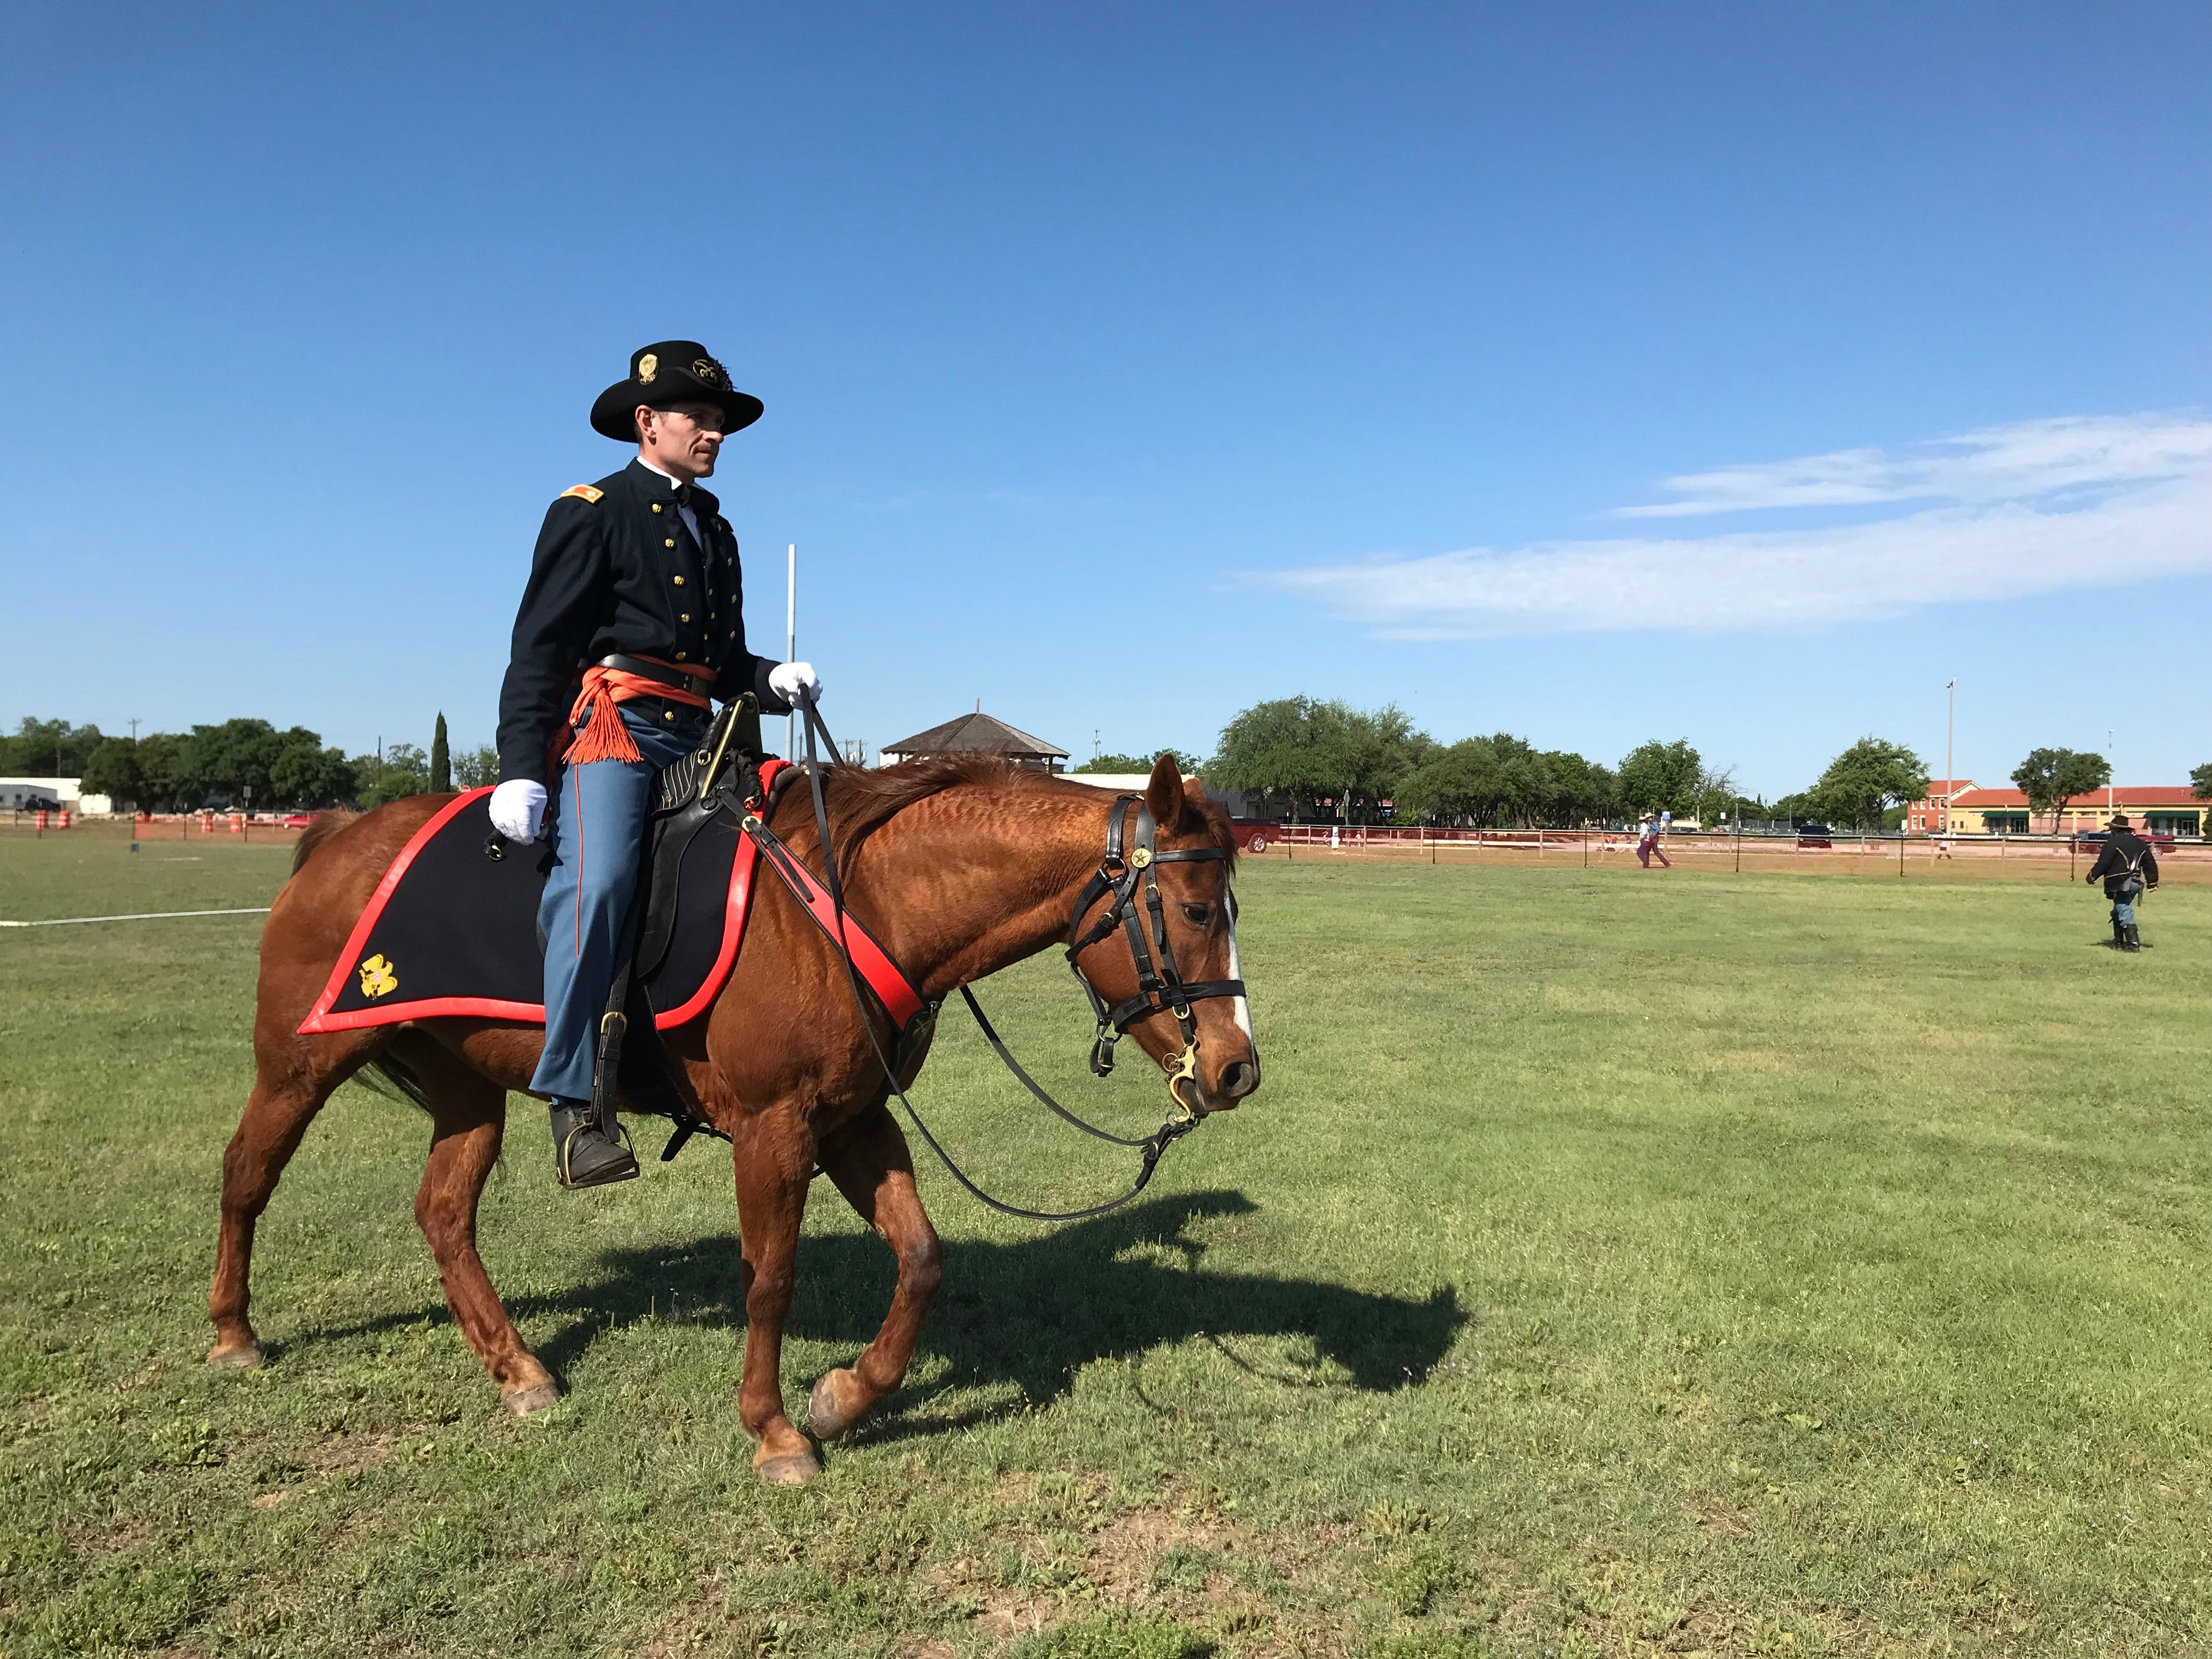 A rider finishes his course at the Regional Cavalry Competition at Fort Concho, 630 S. Oakes St. on Friday, April 26, 2019.